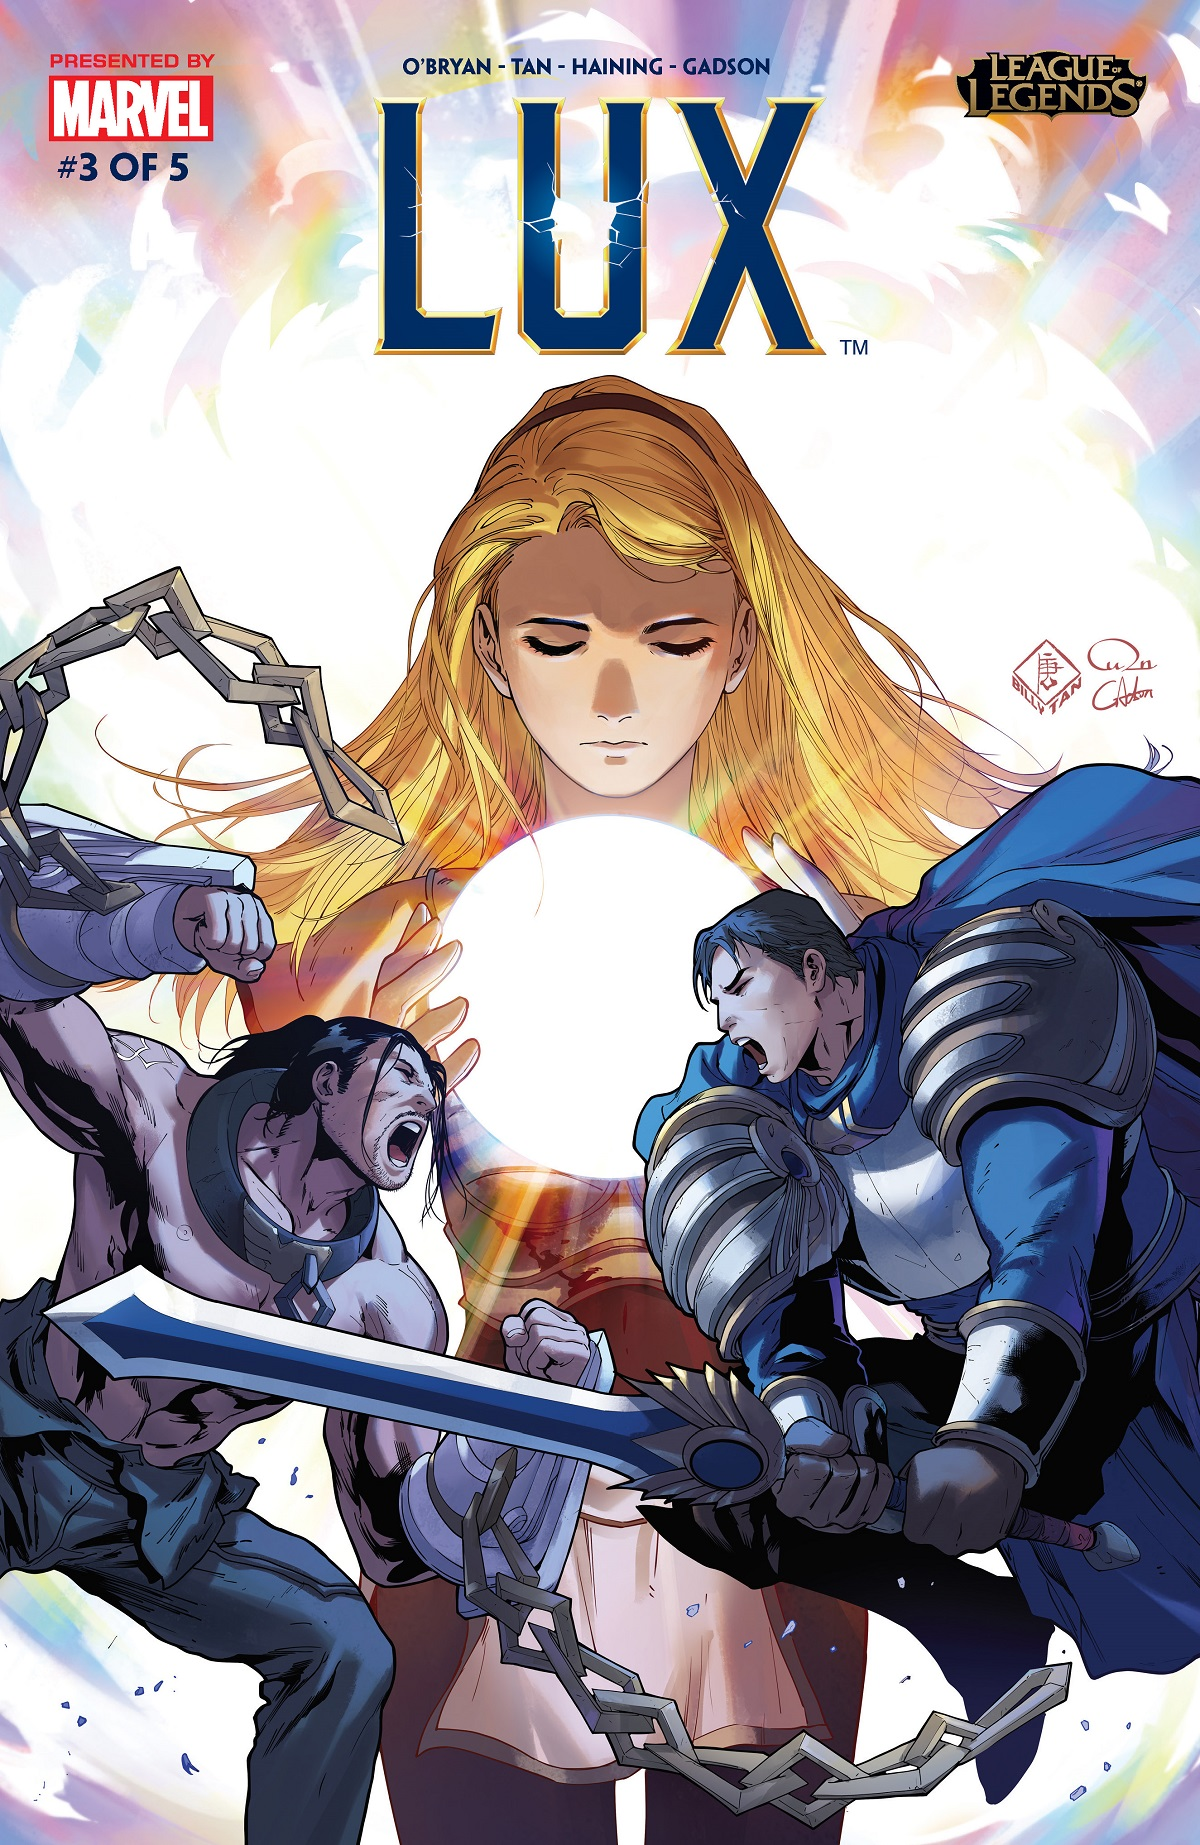 League of Legends: Lux (2019) #3